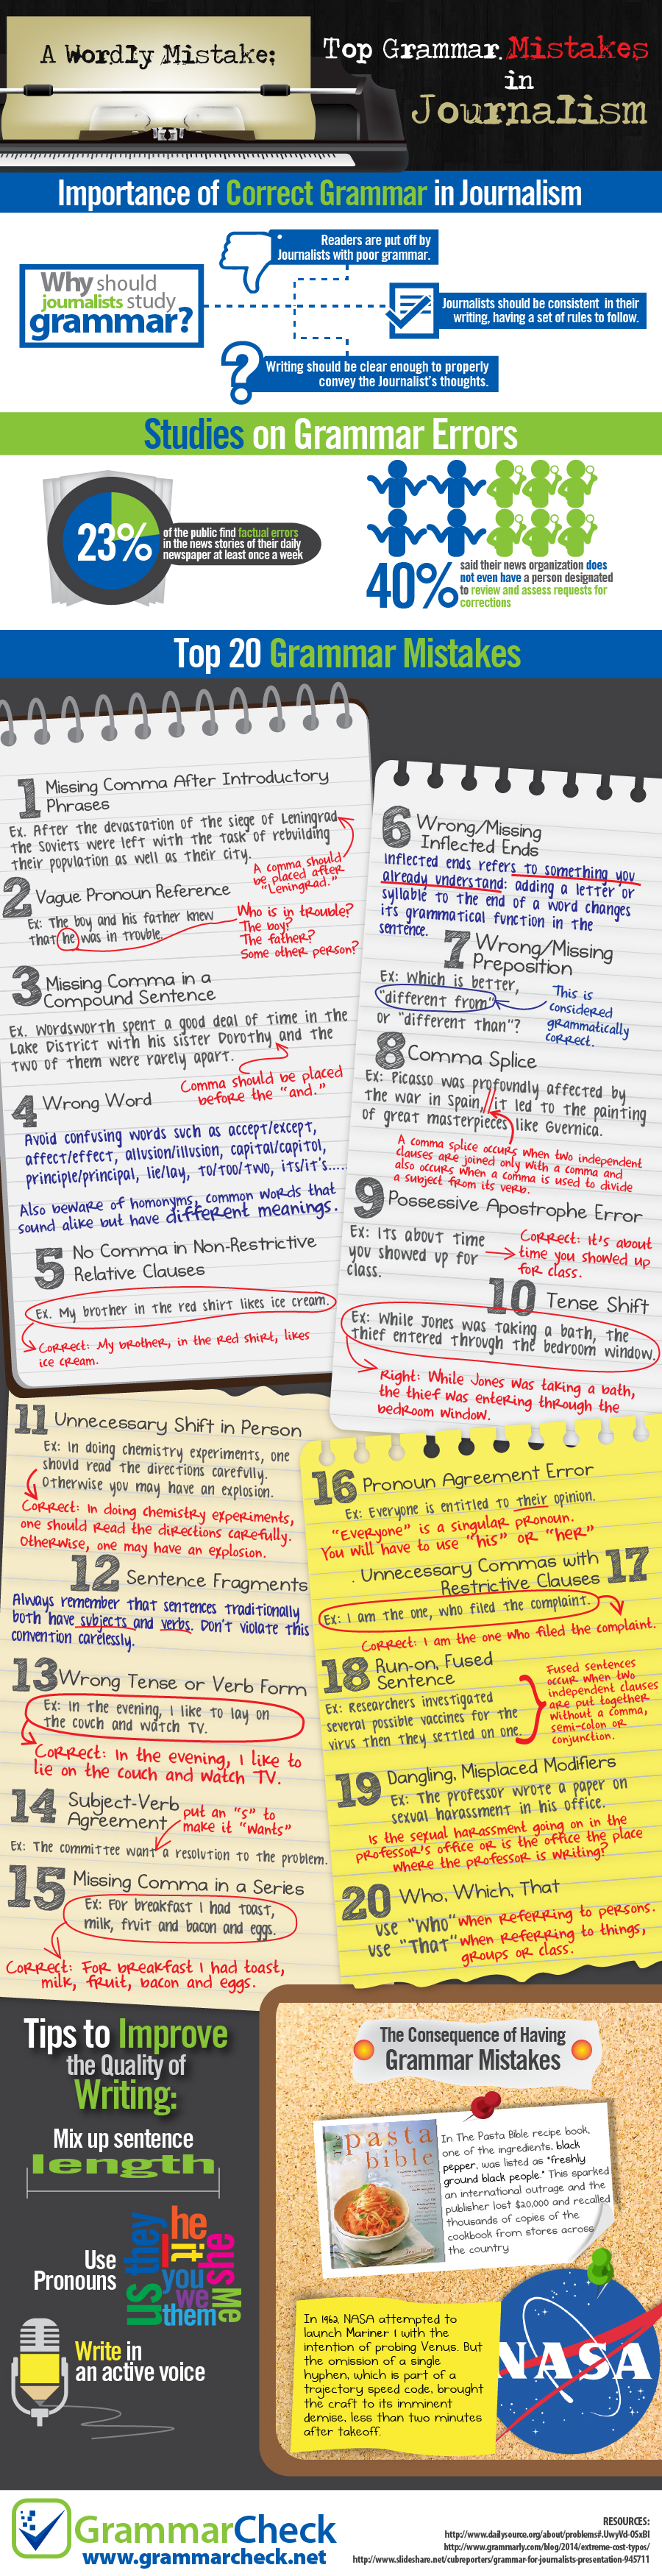 wordly mistake top 20 grammar mistakes in journalism infographic a wordly mistake top 20 grammar mistakes in journalism infographic